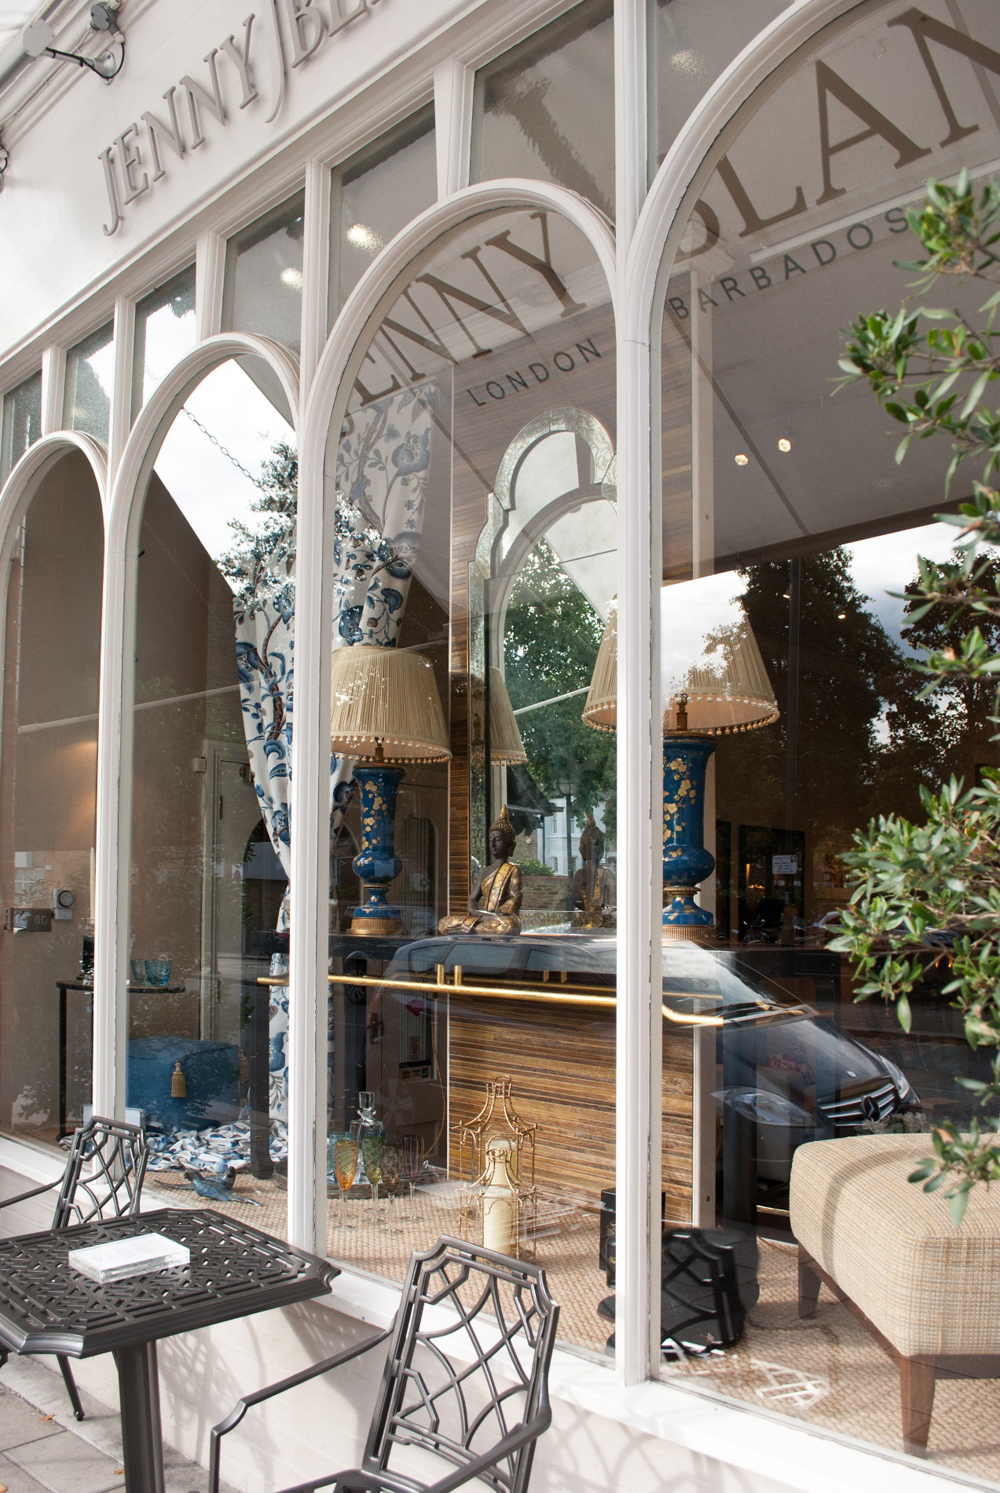 Jenny Blanc - Showroom London at Autumn Time